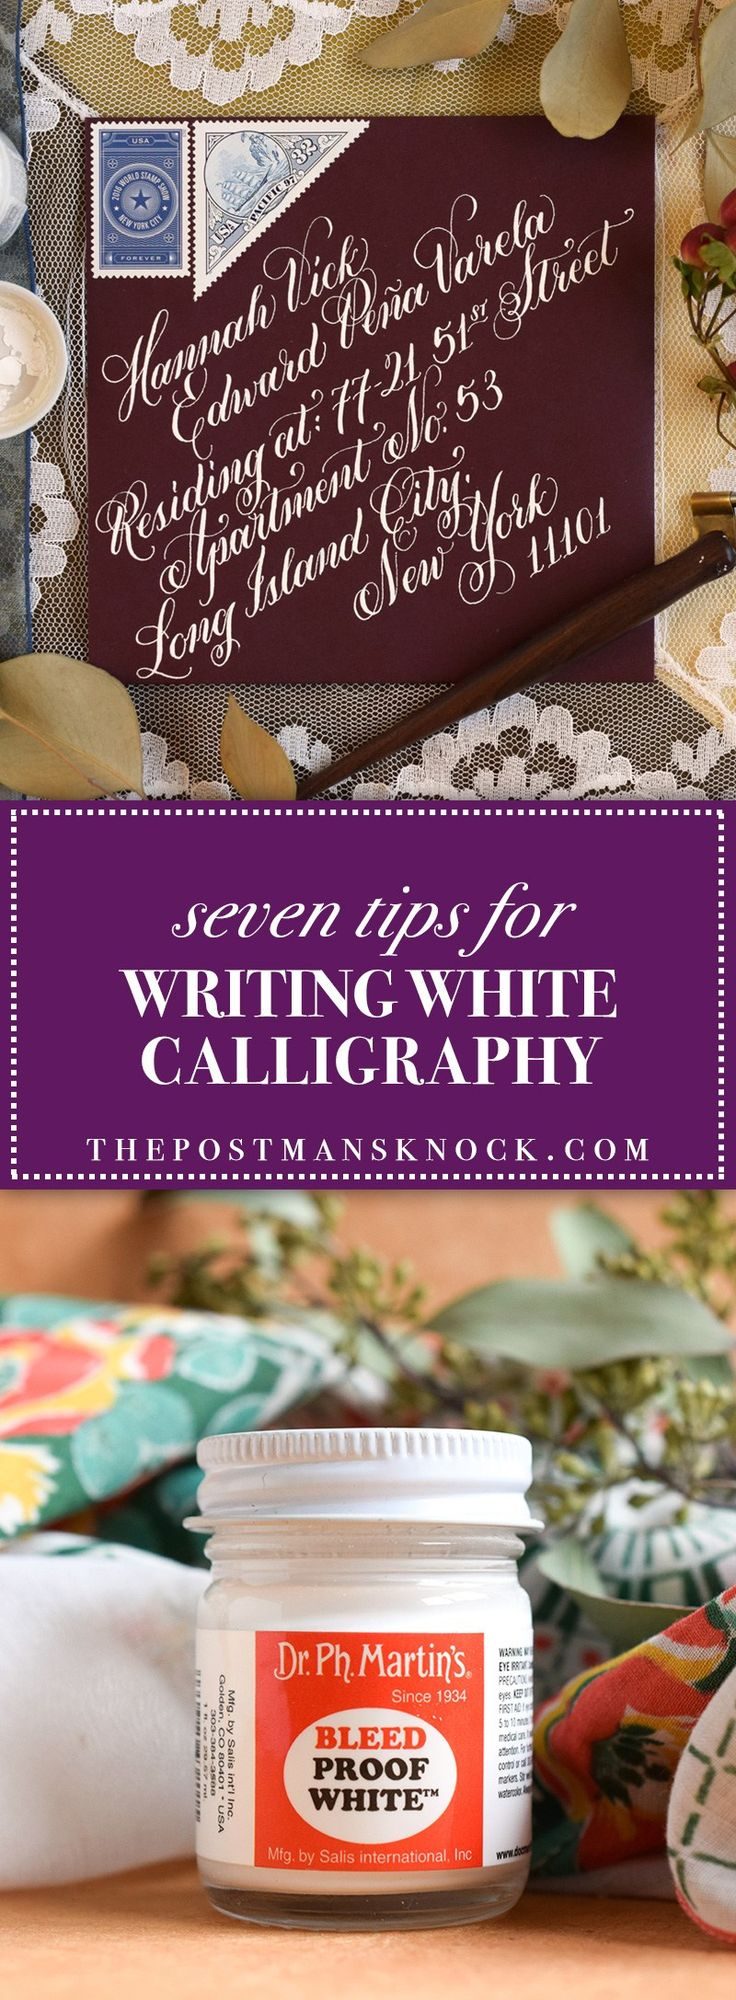 Seven Tips for Writing White Calligraphy | The Postman's Knock